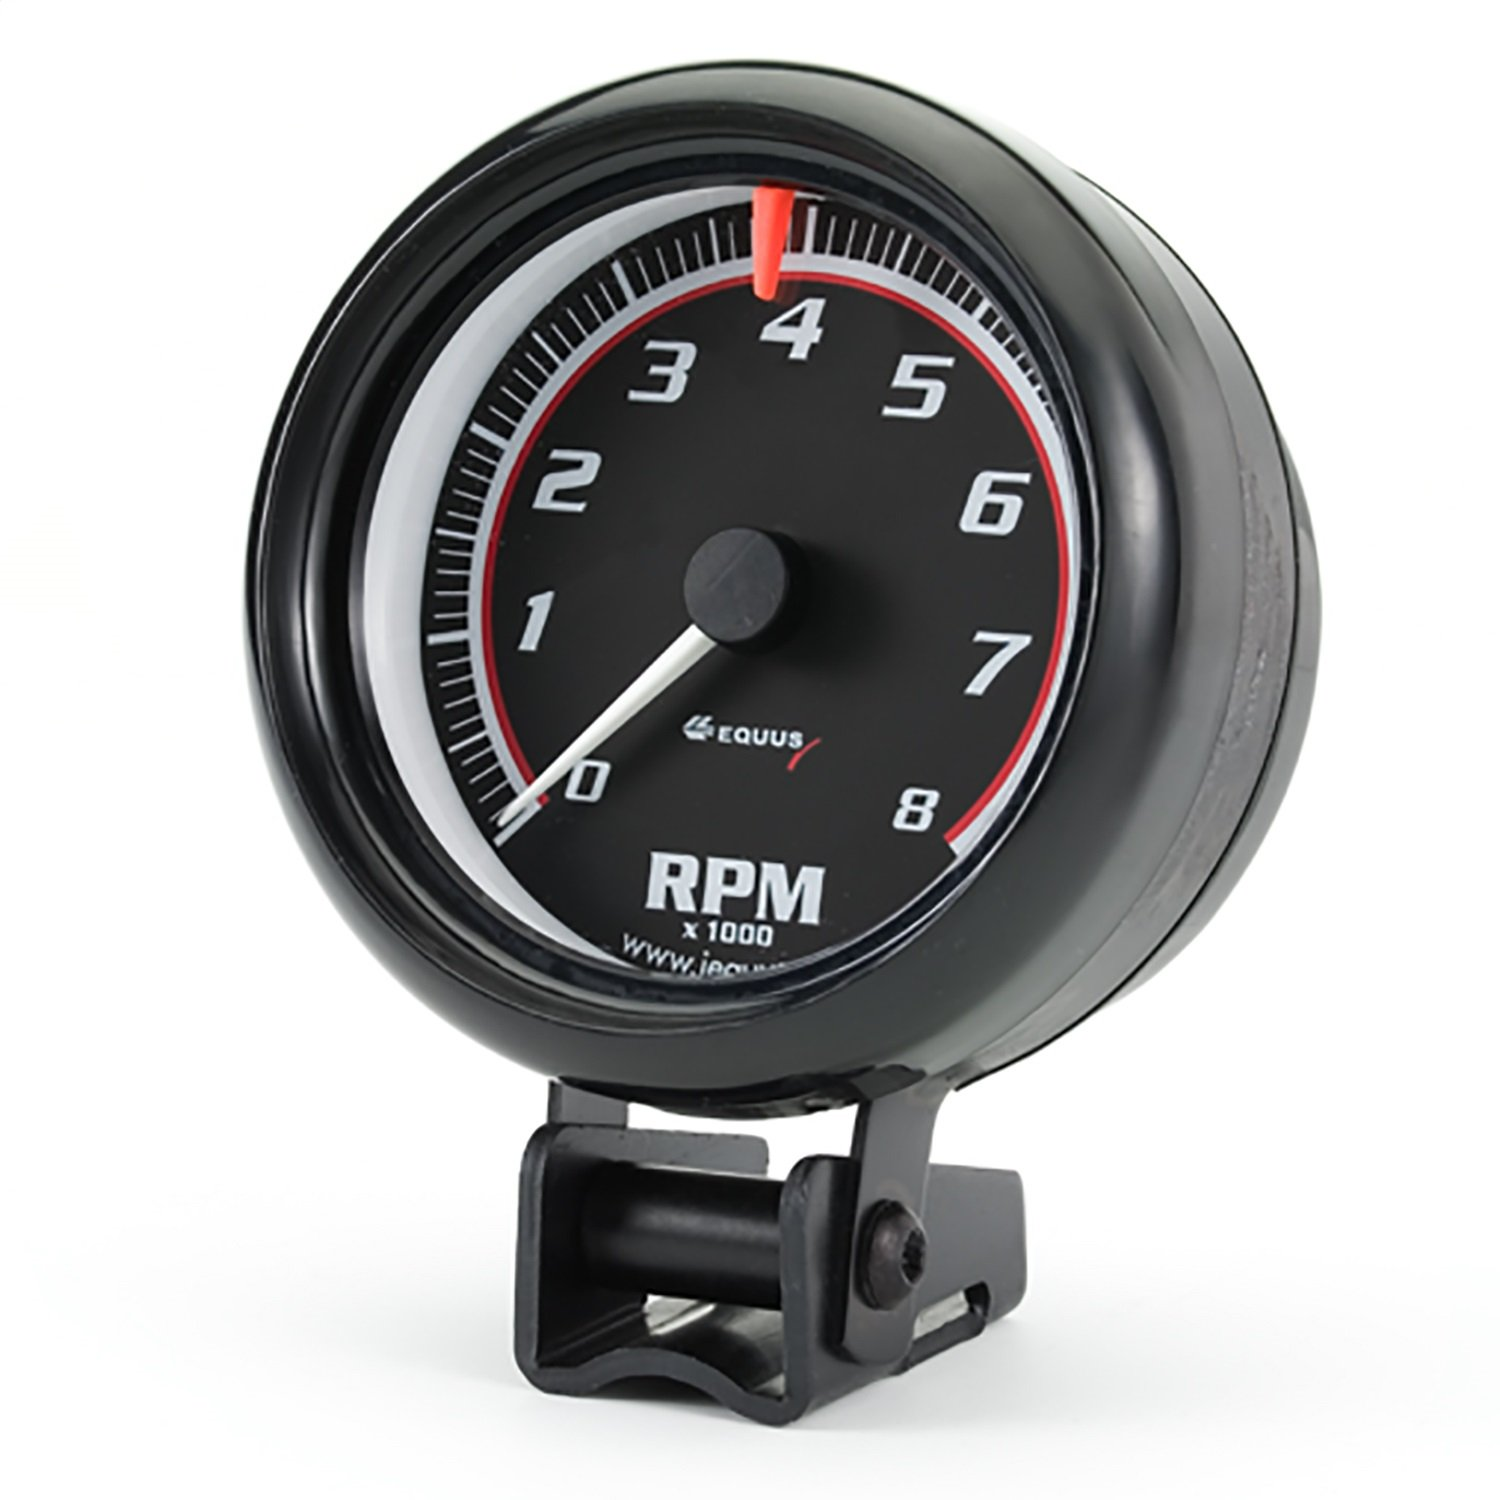 Equus 6088 Black Tachometer - Measures 3 3/8-Inches INNOVA